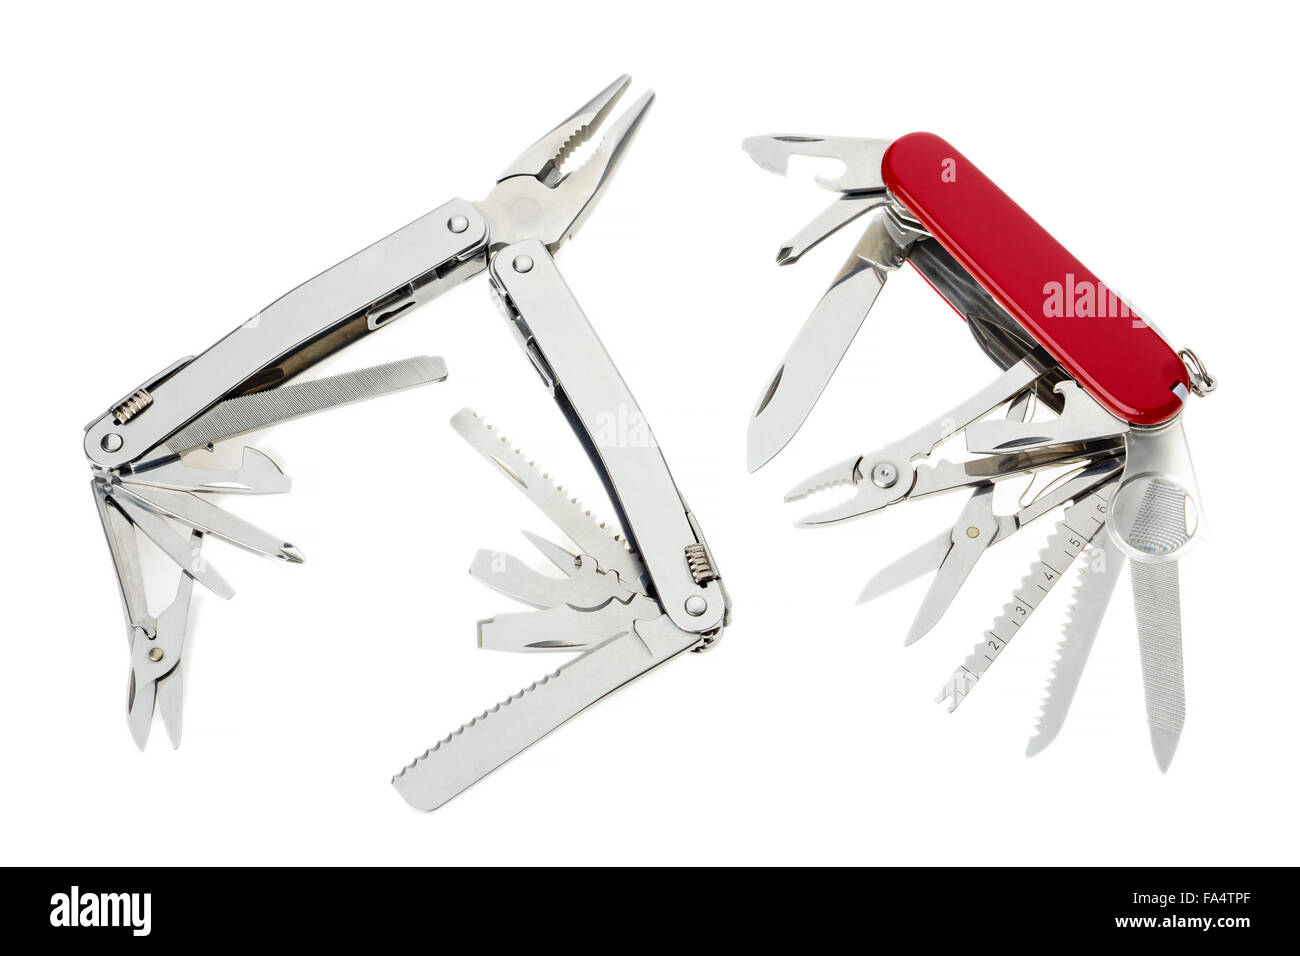 Couple of swiss army knives  isolated on white - Stock Image